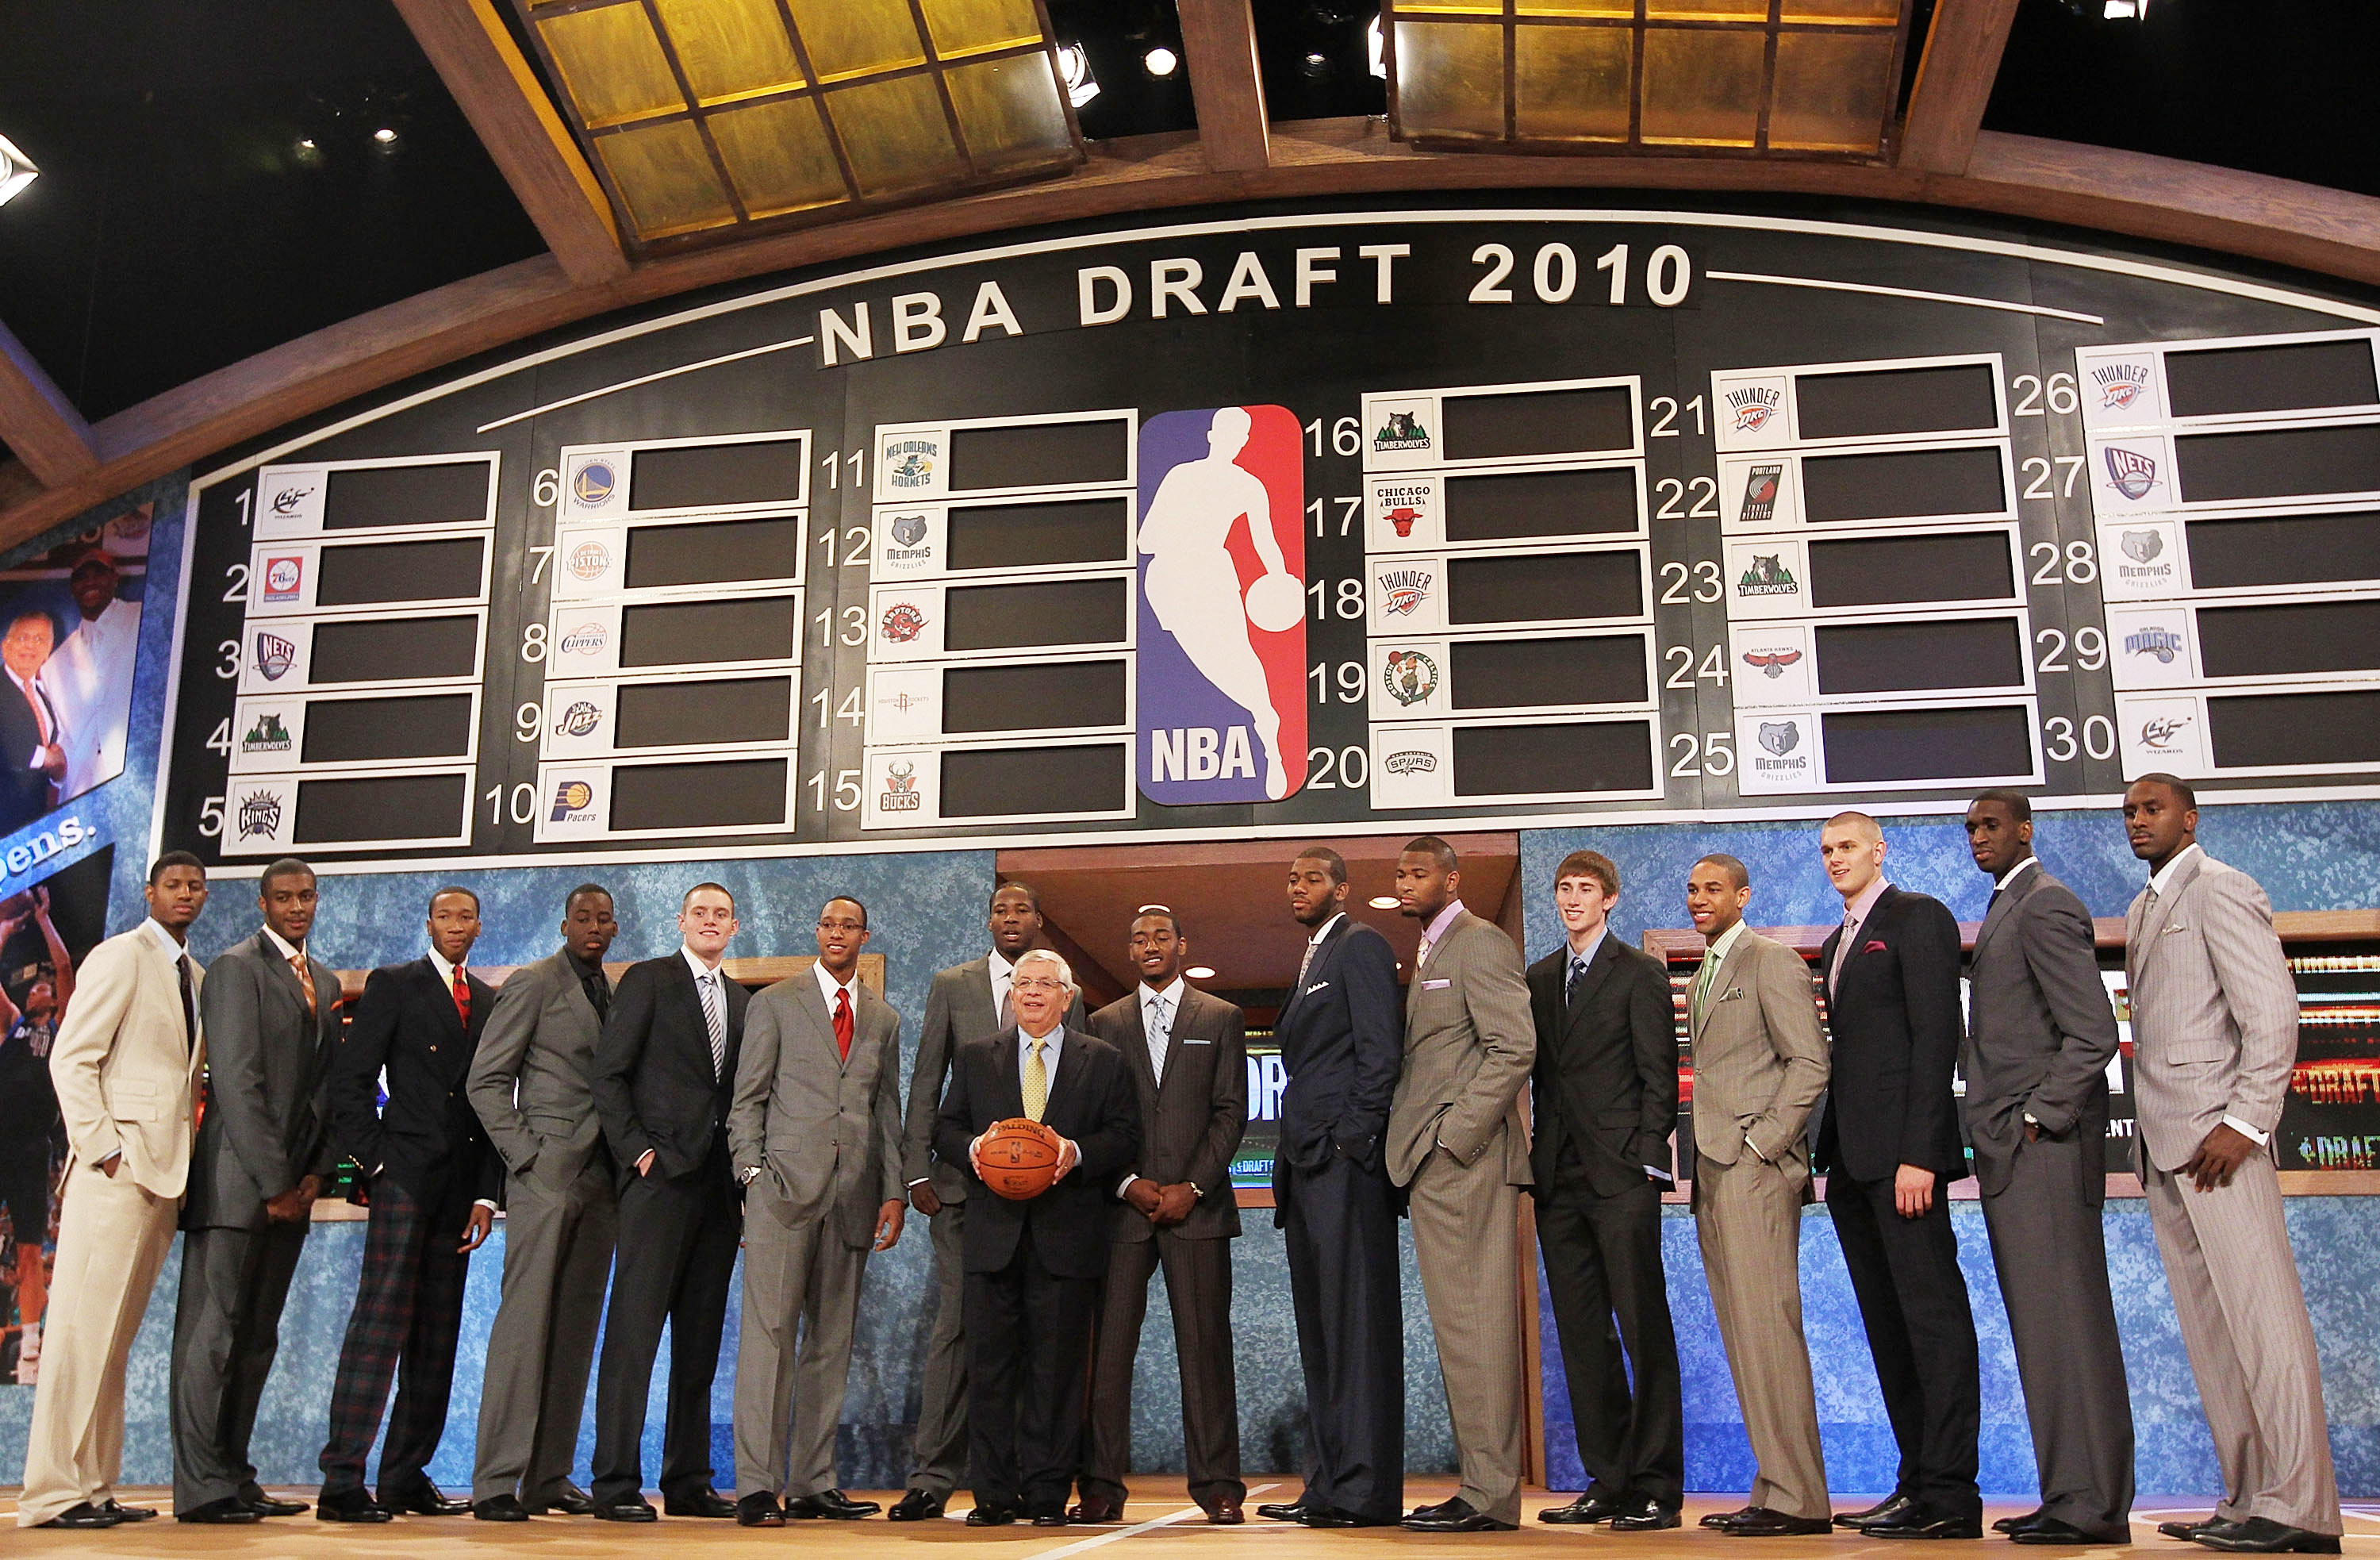 Talent will be available this season too, despite no consensus number one pick